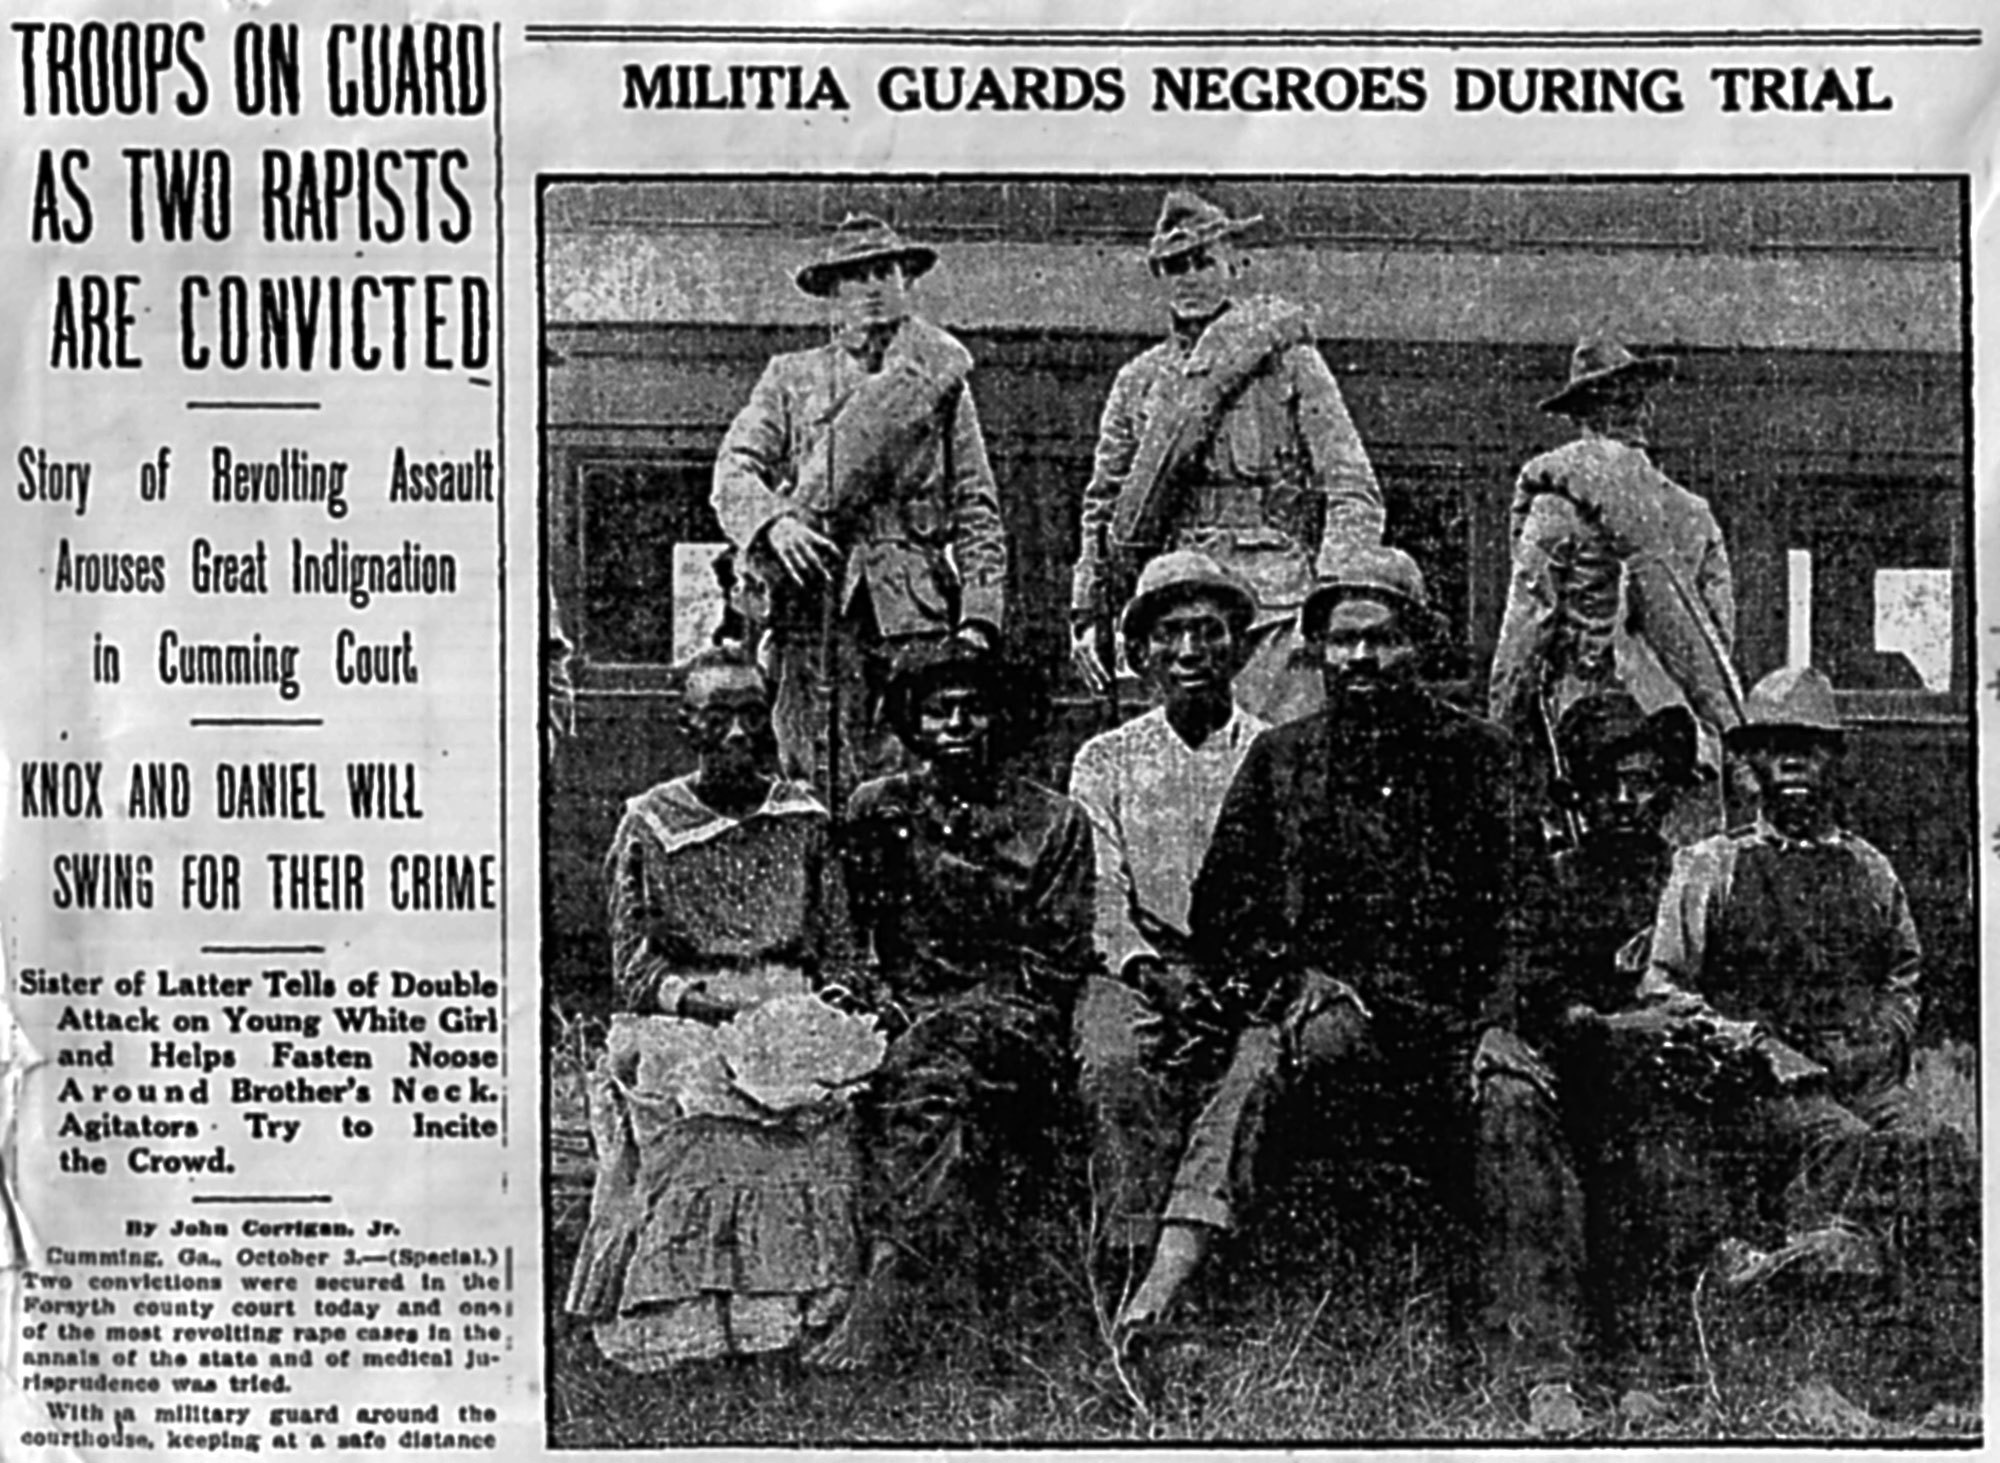 A 1912 edition of the Atlanta Constitution reported on the hanging of two men accused of killing a white woman in Forsyth. The attached photo did not identify which men were the accused. (Atlanta Constitution)